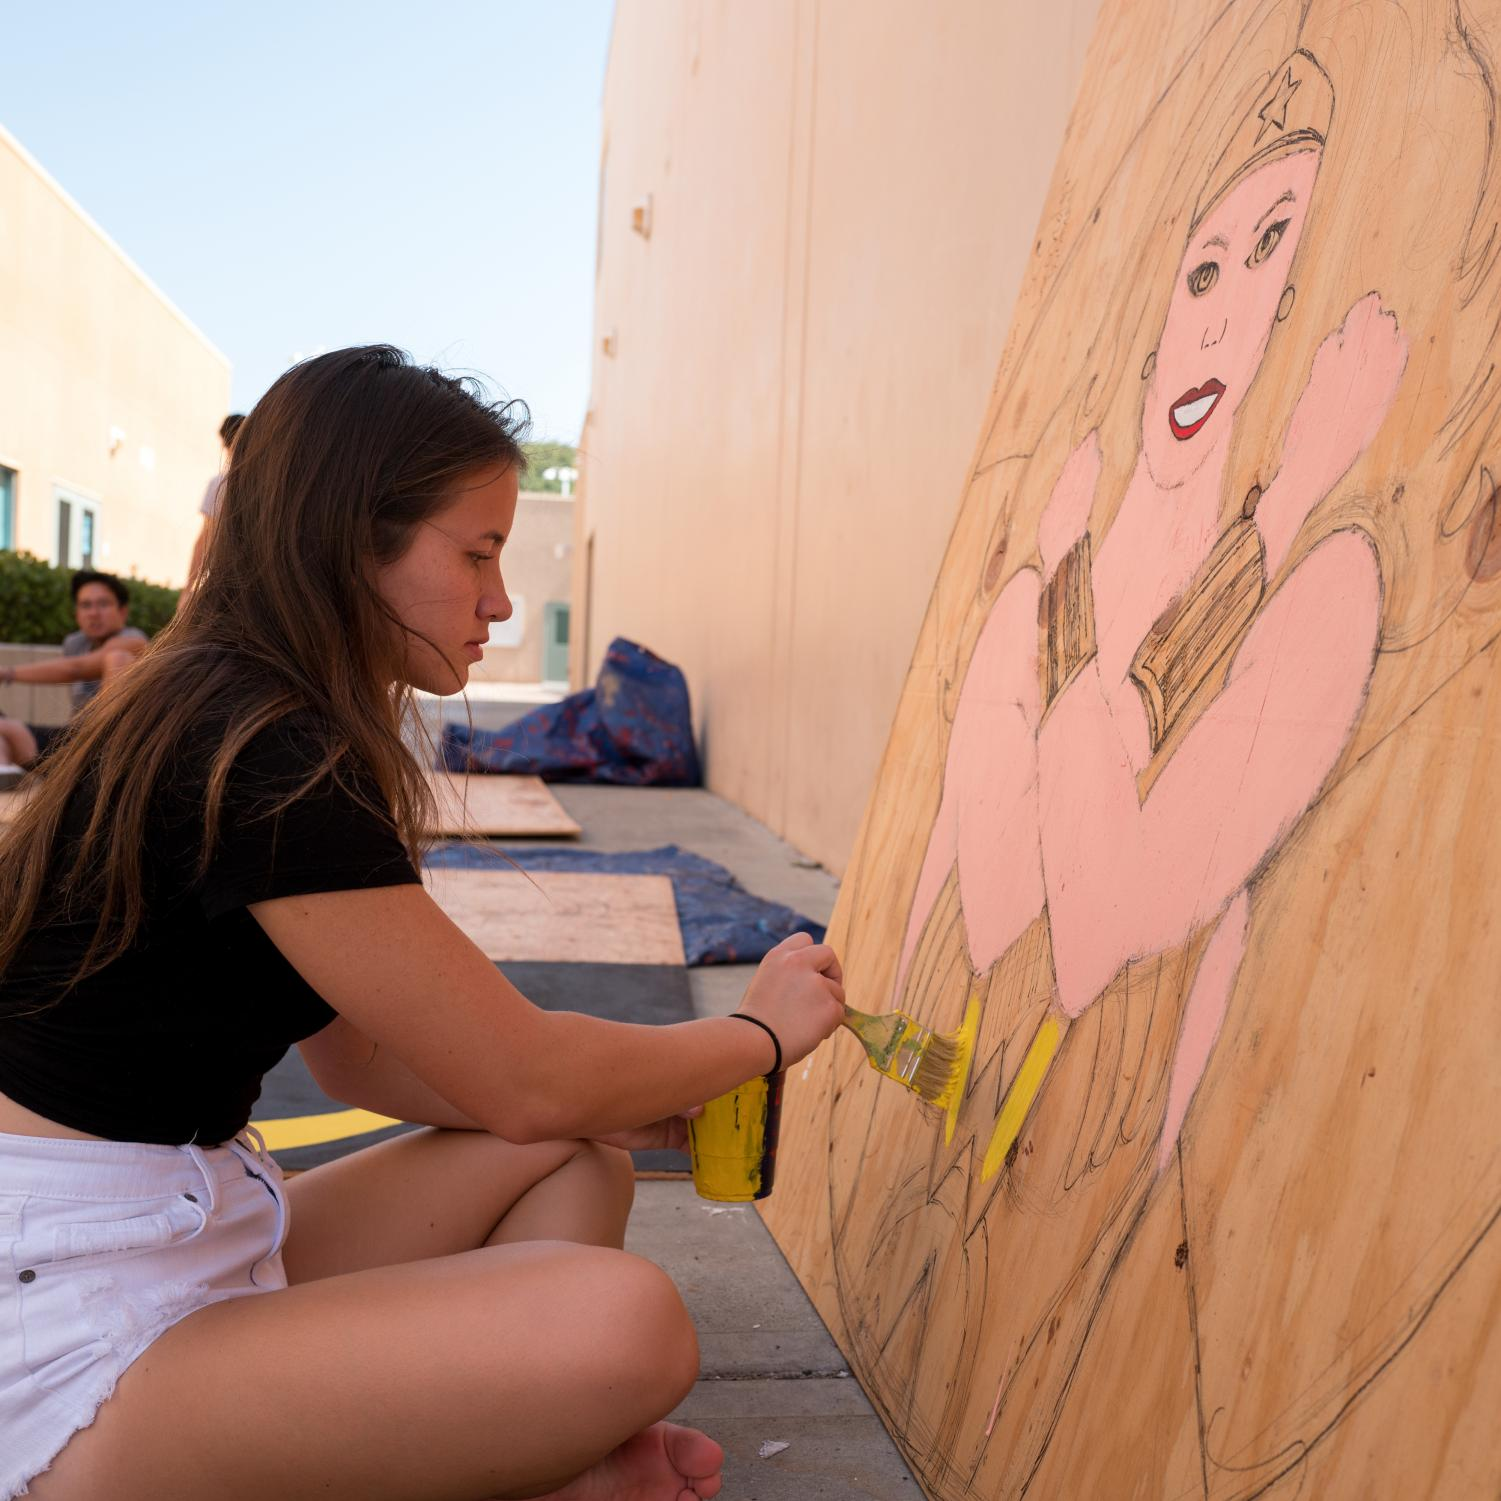 PAINTING THE UNIVERSE: Senior Ashley Peters brings a Wonder Woman decoration to life with vivid colors and bold brushstrokes in anticipation of the upcoming Homecoming dance on Oct. 5.